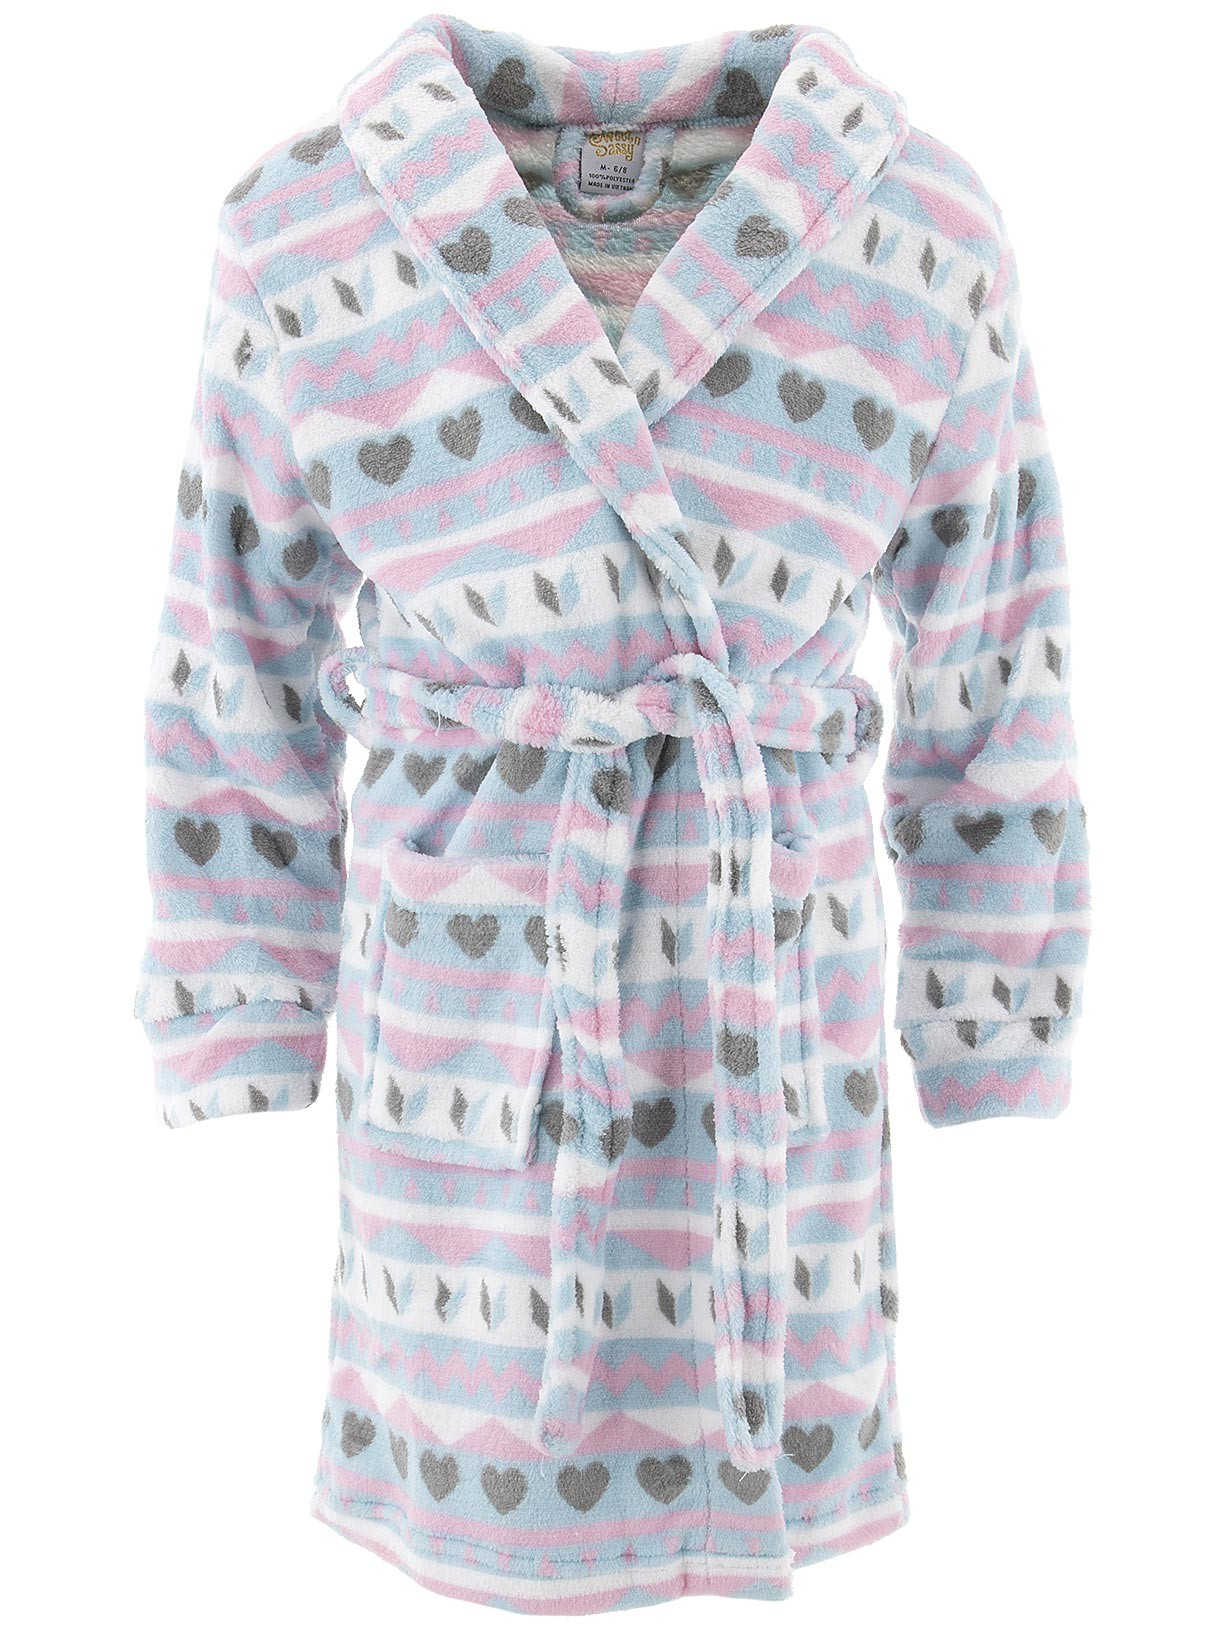 Sweet-N-Sassy Girls Fair Isle Blue Fleece Bathrobe